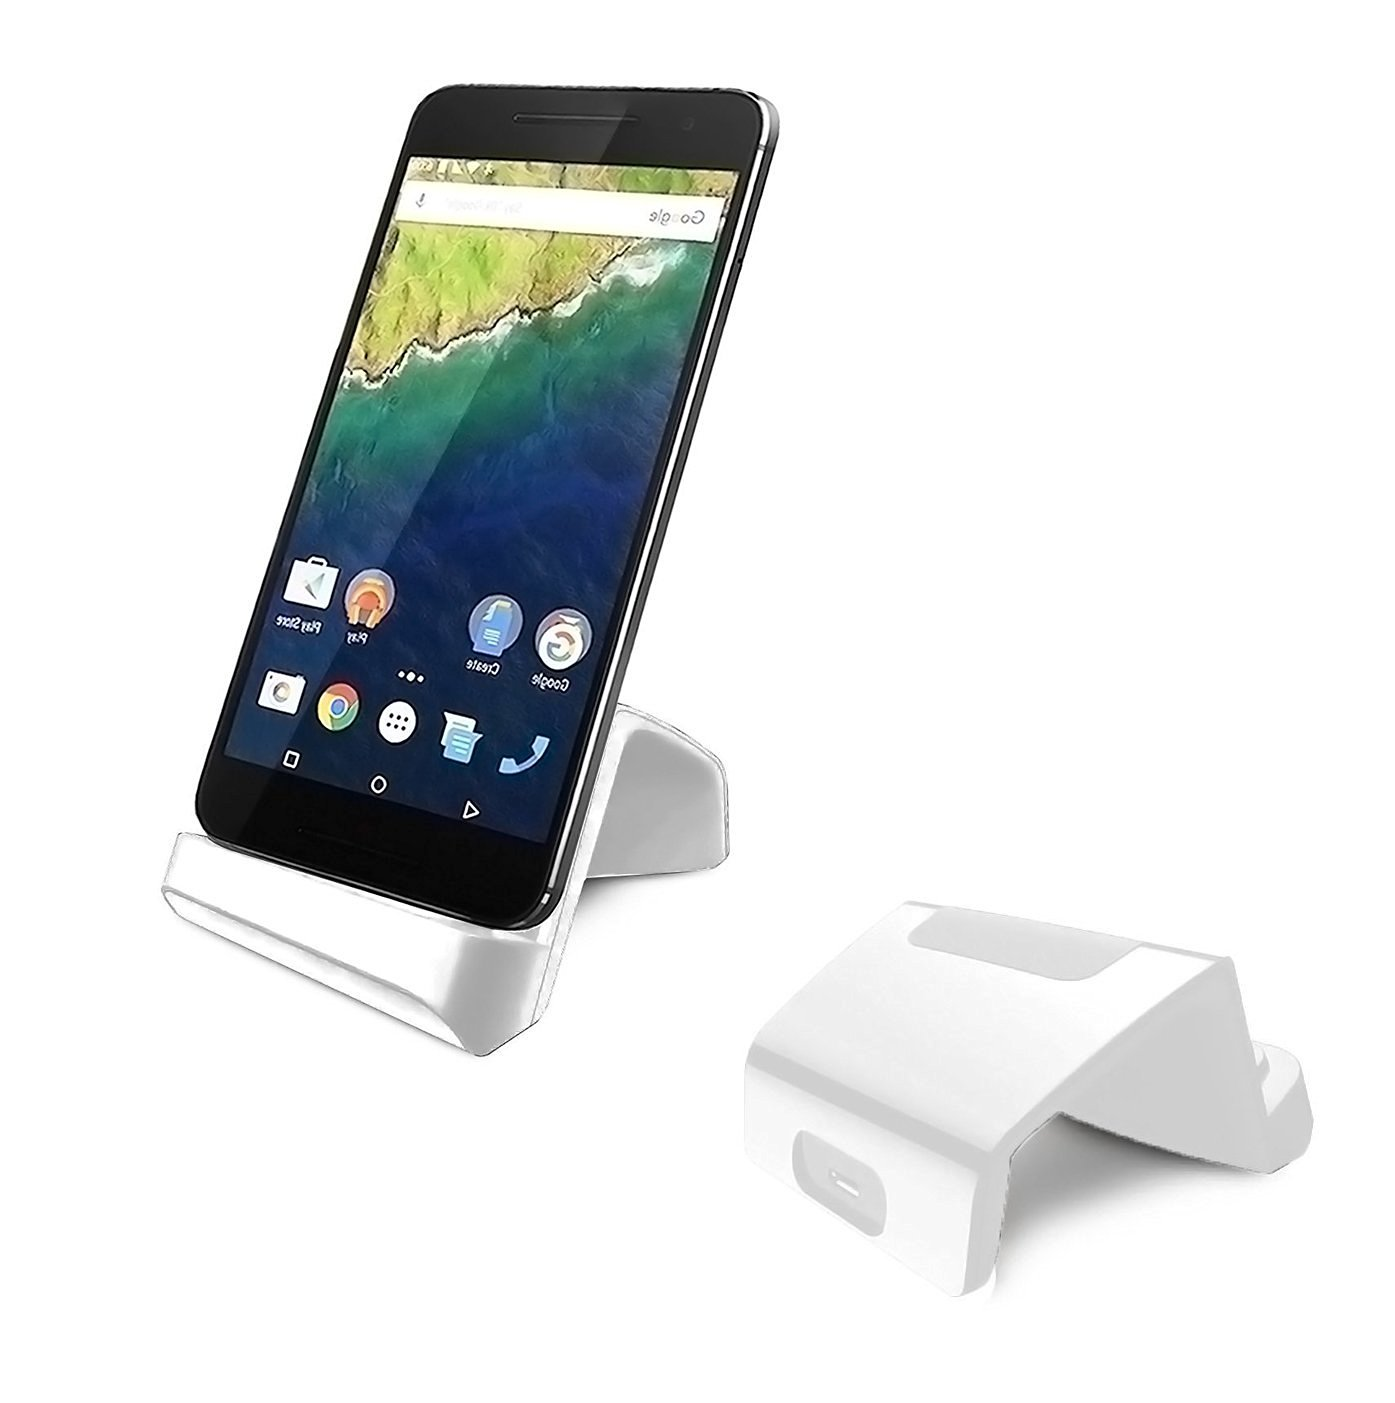 Type C Dock, Geekercity USB Type C Charging Dock Cellphone Stand Cradle for LG G5, HTC ONE A9, HP Elite X3, Nexus5X, Nexus 6P, Droid Turbo 2, Microsoft Lumia 950 950XL (White)